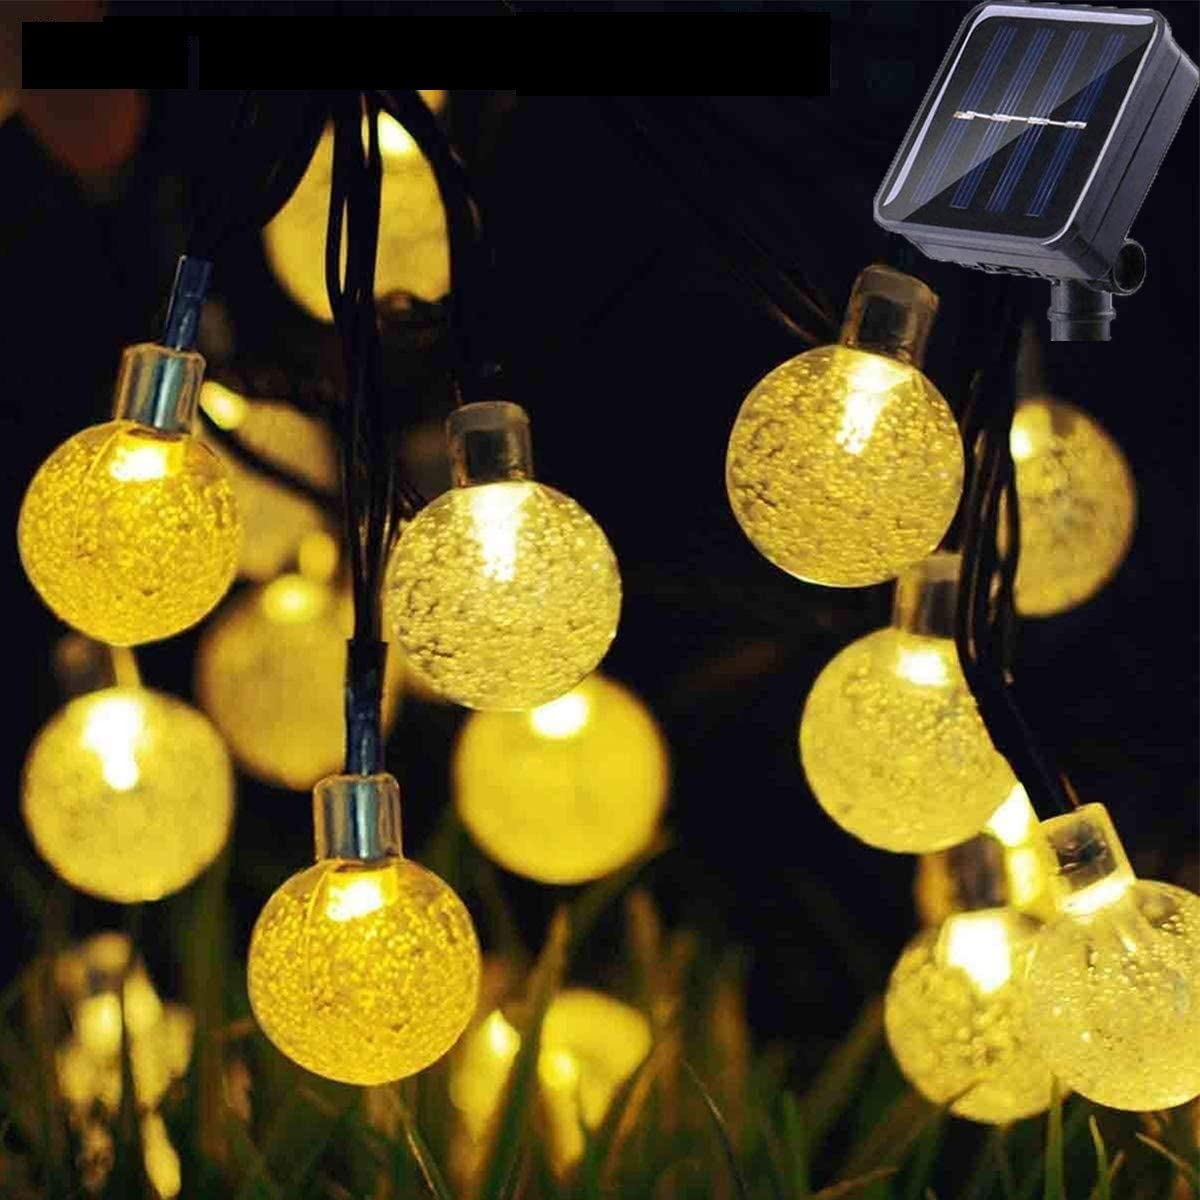 Outdoor Solar Bubble Light String 30LEDs 6.5M&21Ft Crystal Ball Fairy Lights Xmas Strands Waterproof with 8Modes for Patio, Meadow, Oak Tree, Lawn, Garden, Wedding, Party, Christmas Decor[Warm White]